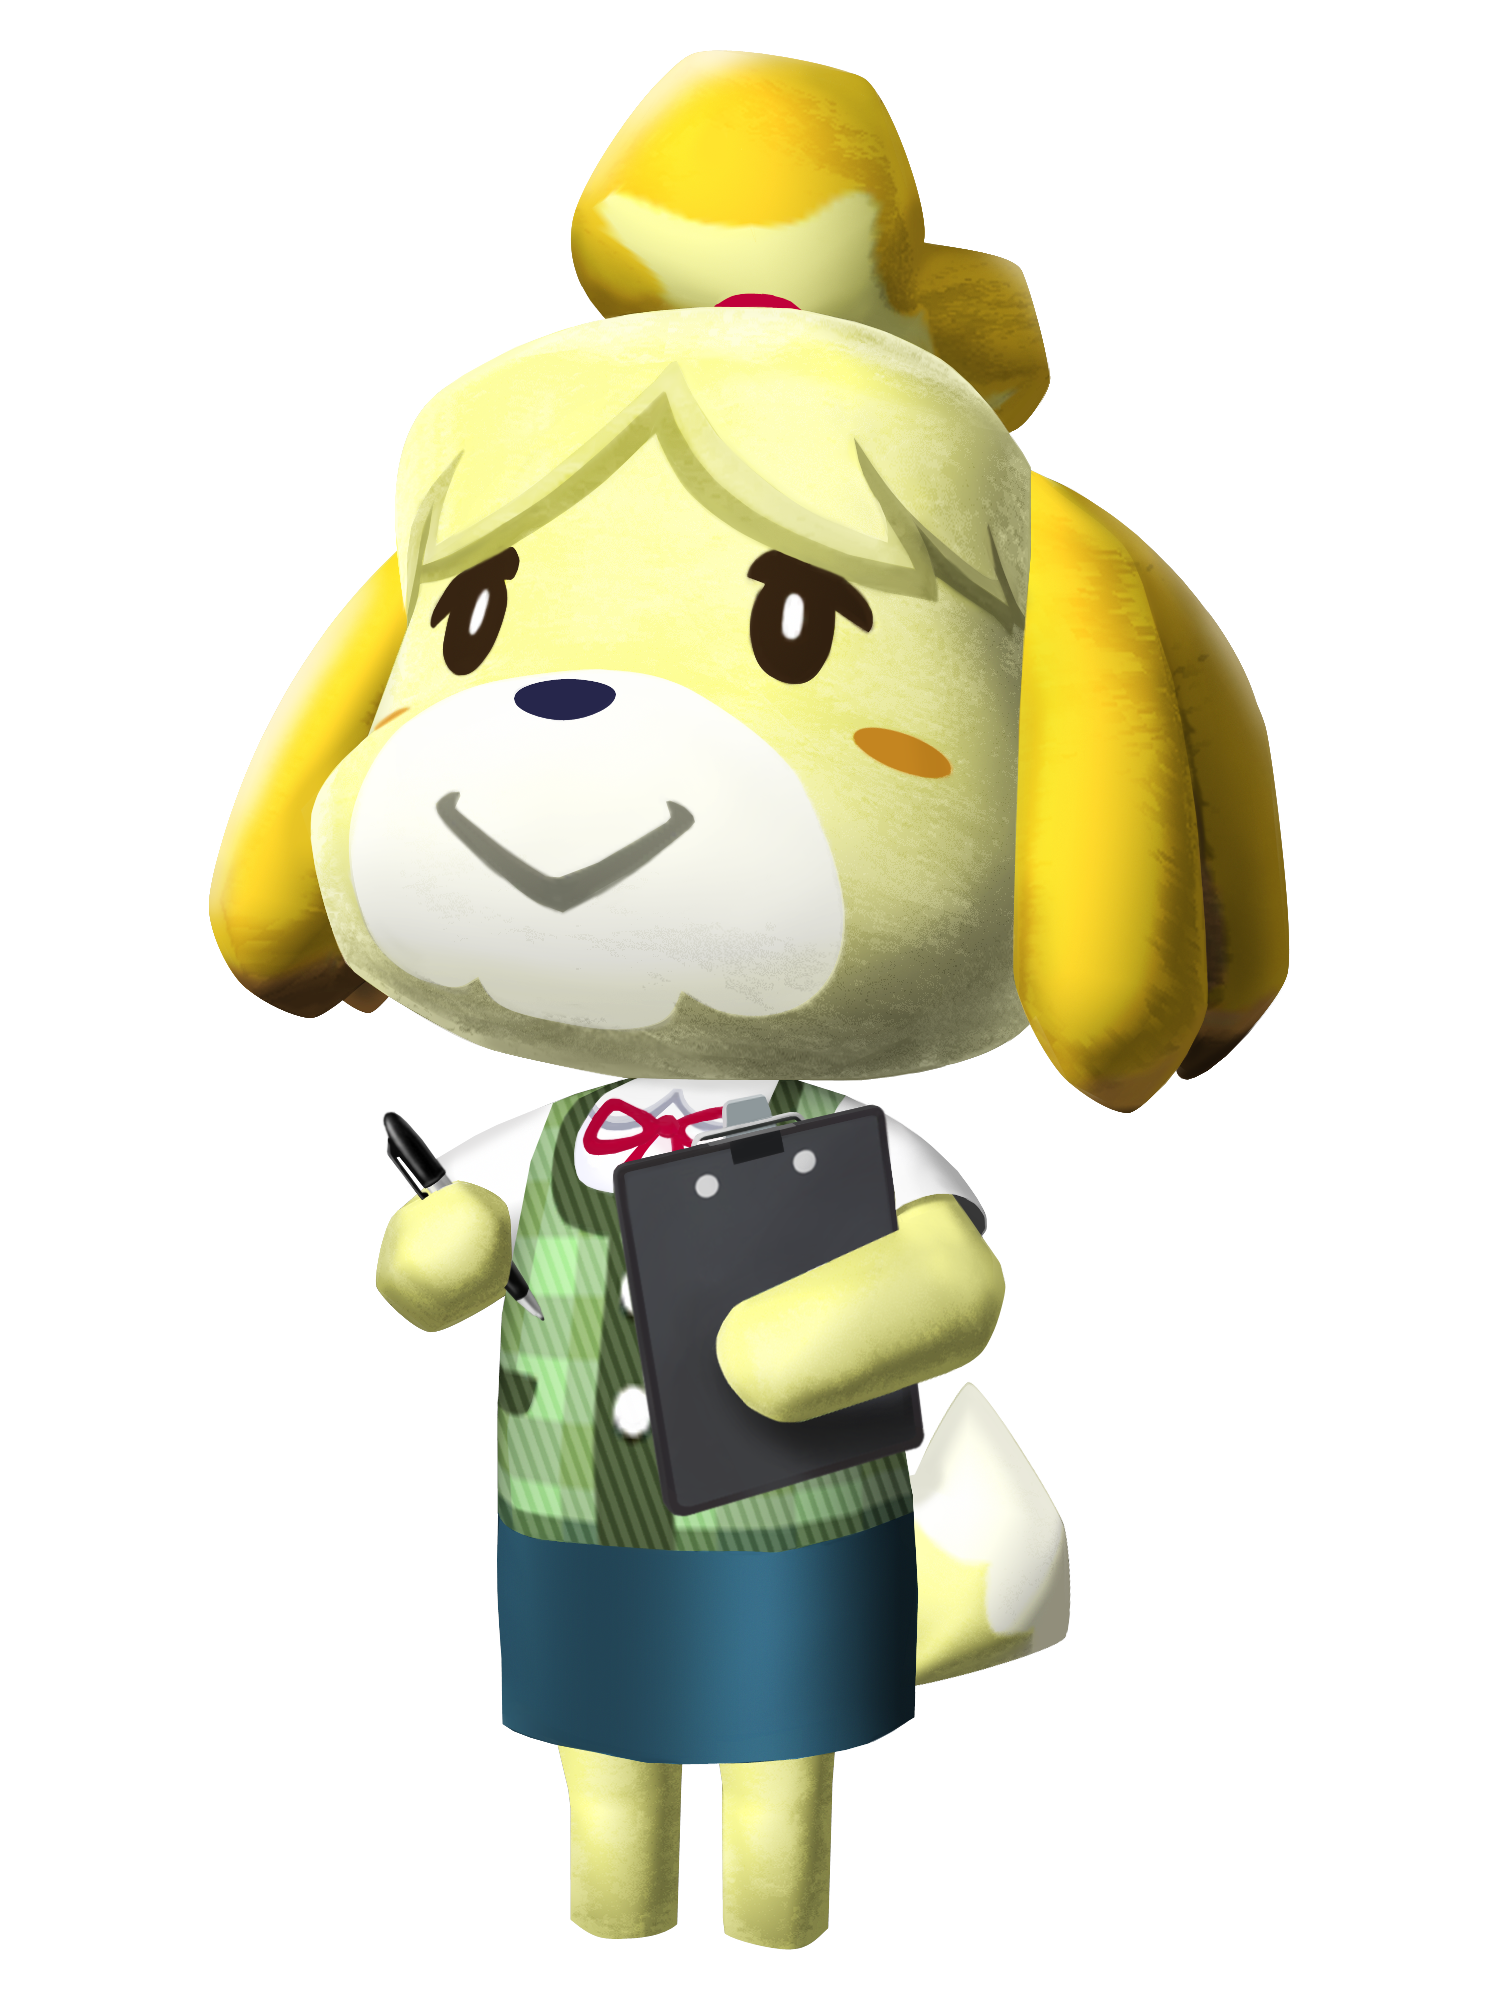 Animal crossing new leaf png. Image isabelle video games